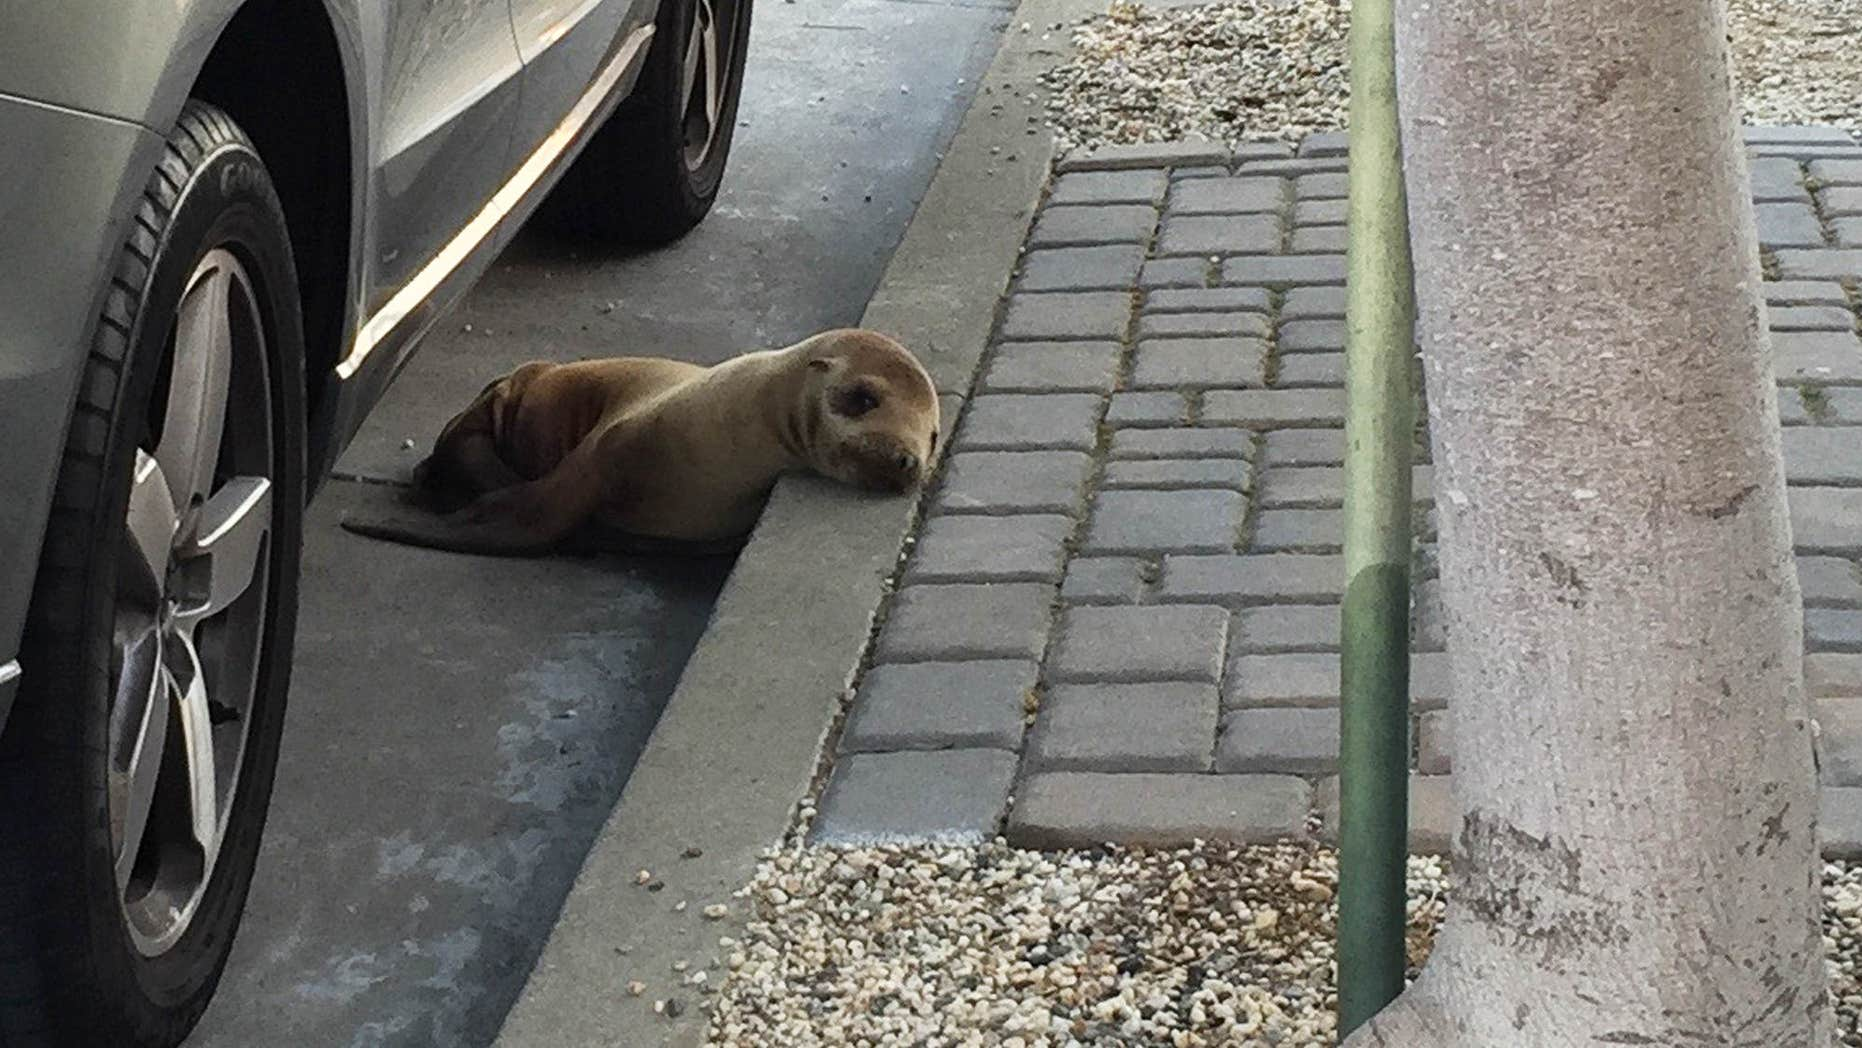 April 30, 2015: This photo provided by The Marine Mammal Center shows a stranded sea lion pup lying next to a car on a San Francisco street.